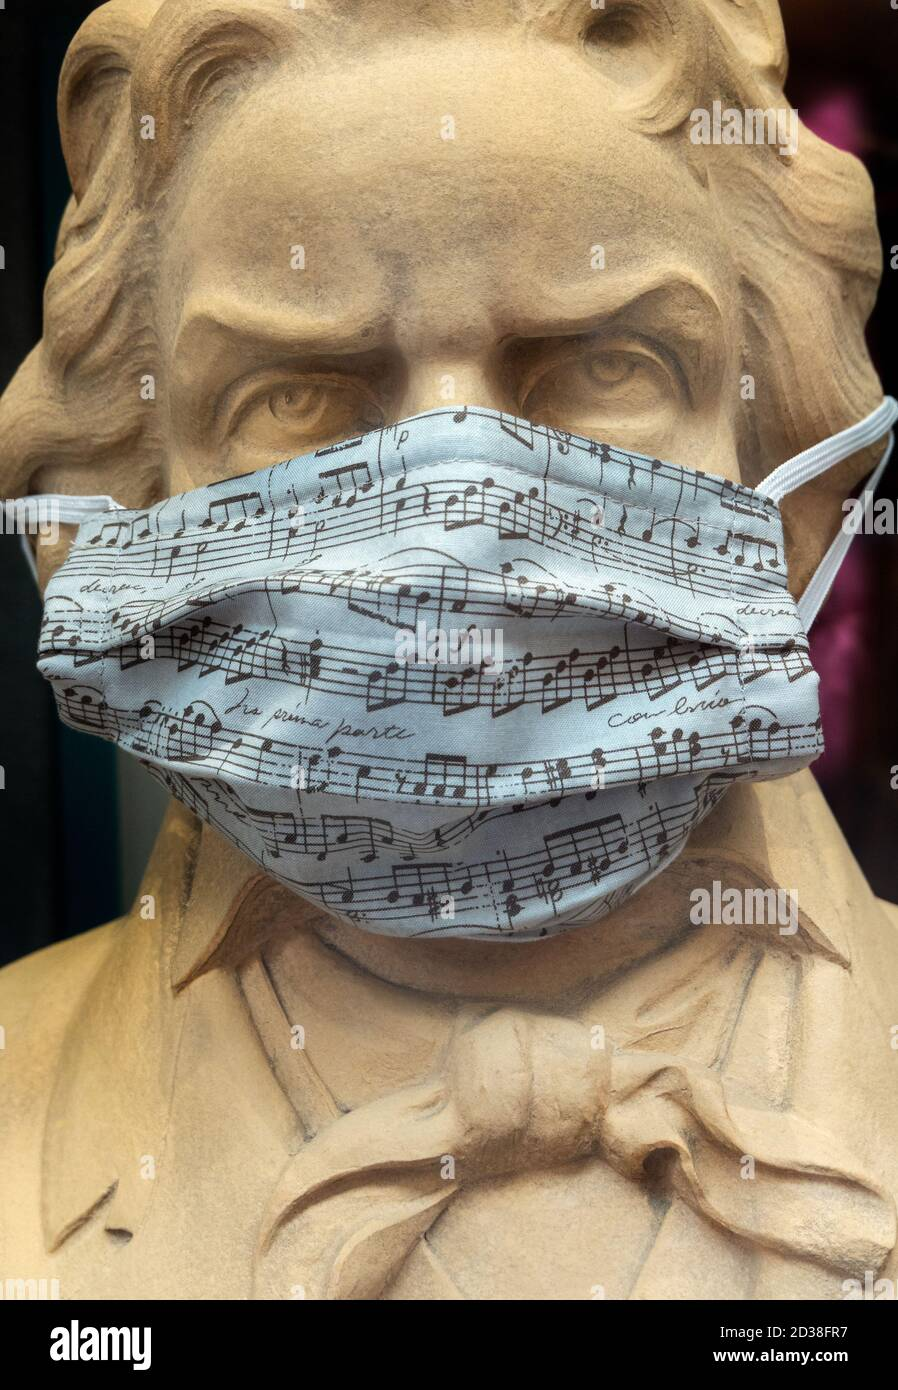 https://c7.alamy.com/comp/2D38FR7/beethoven-statue-bust-wearing-covid-covid19-corona-face-mask-with-musical-score-in-trier-germany-2020-2D38FR7.jpg